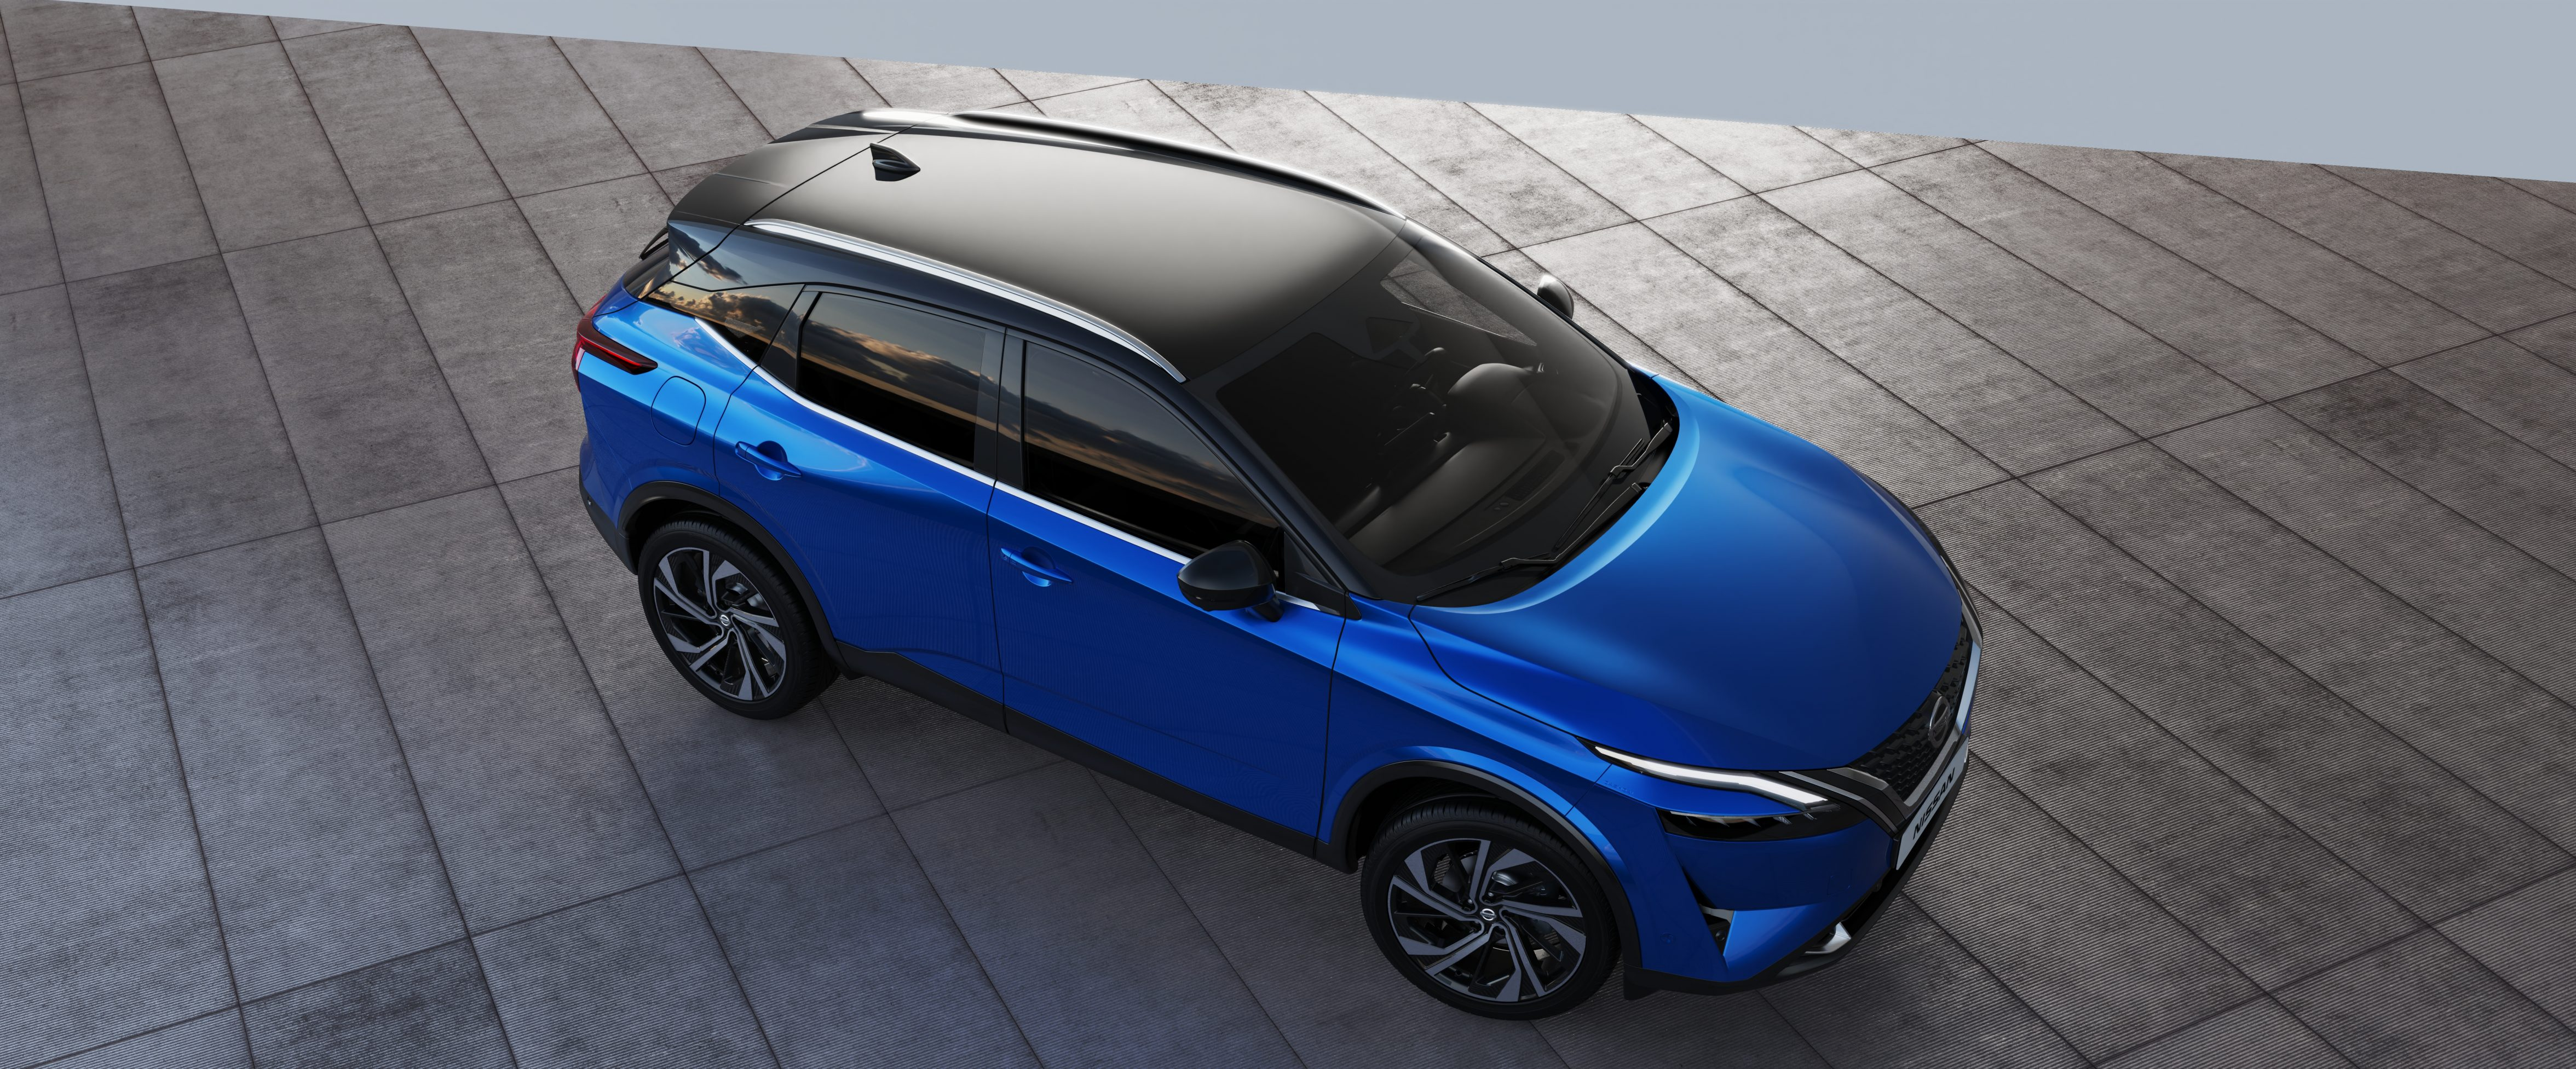 The new Nissan Qashqai is available in 16 different colour variations for optimum modification.